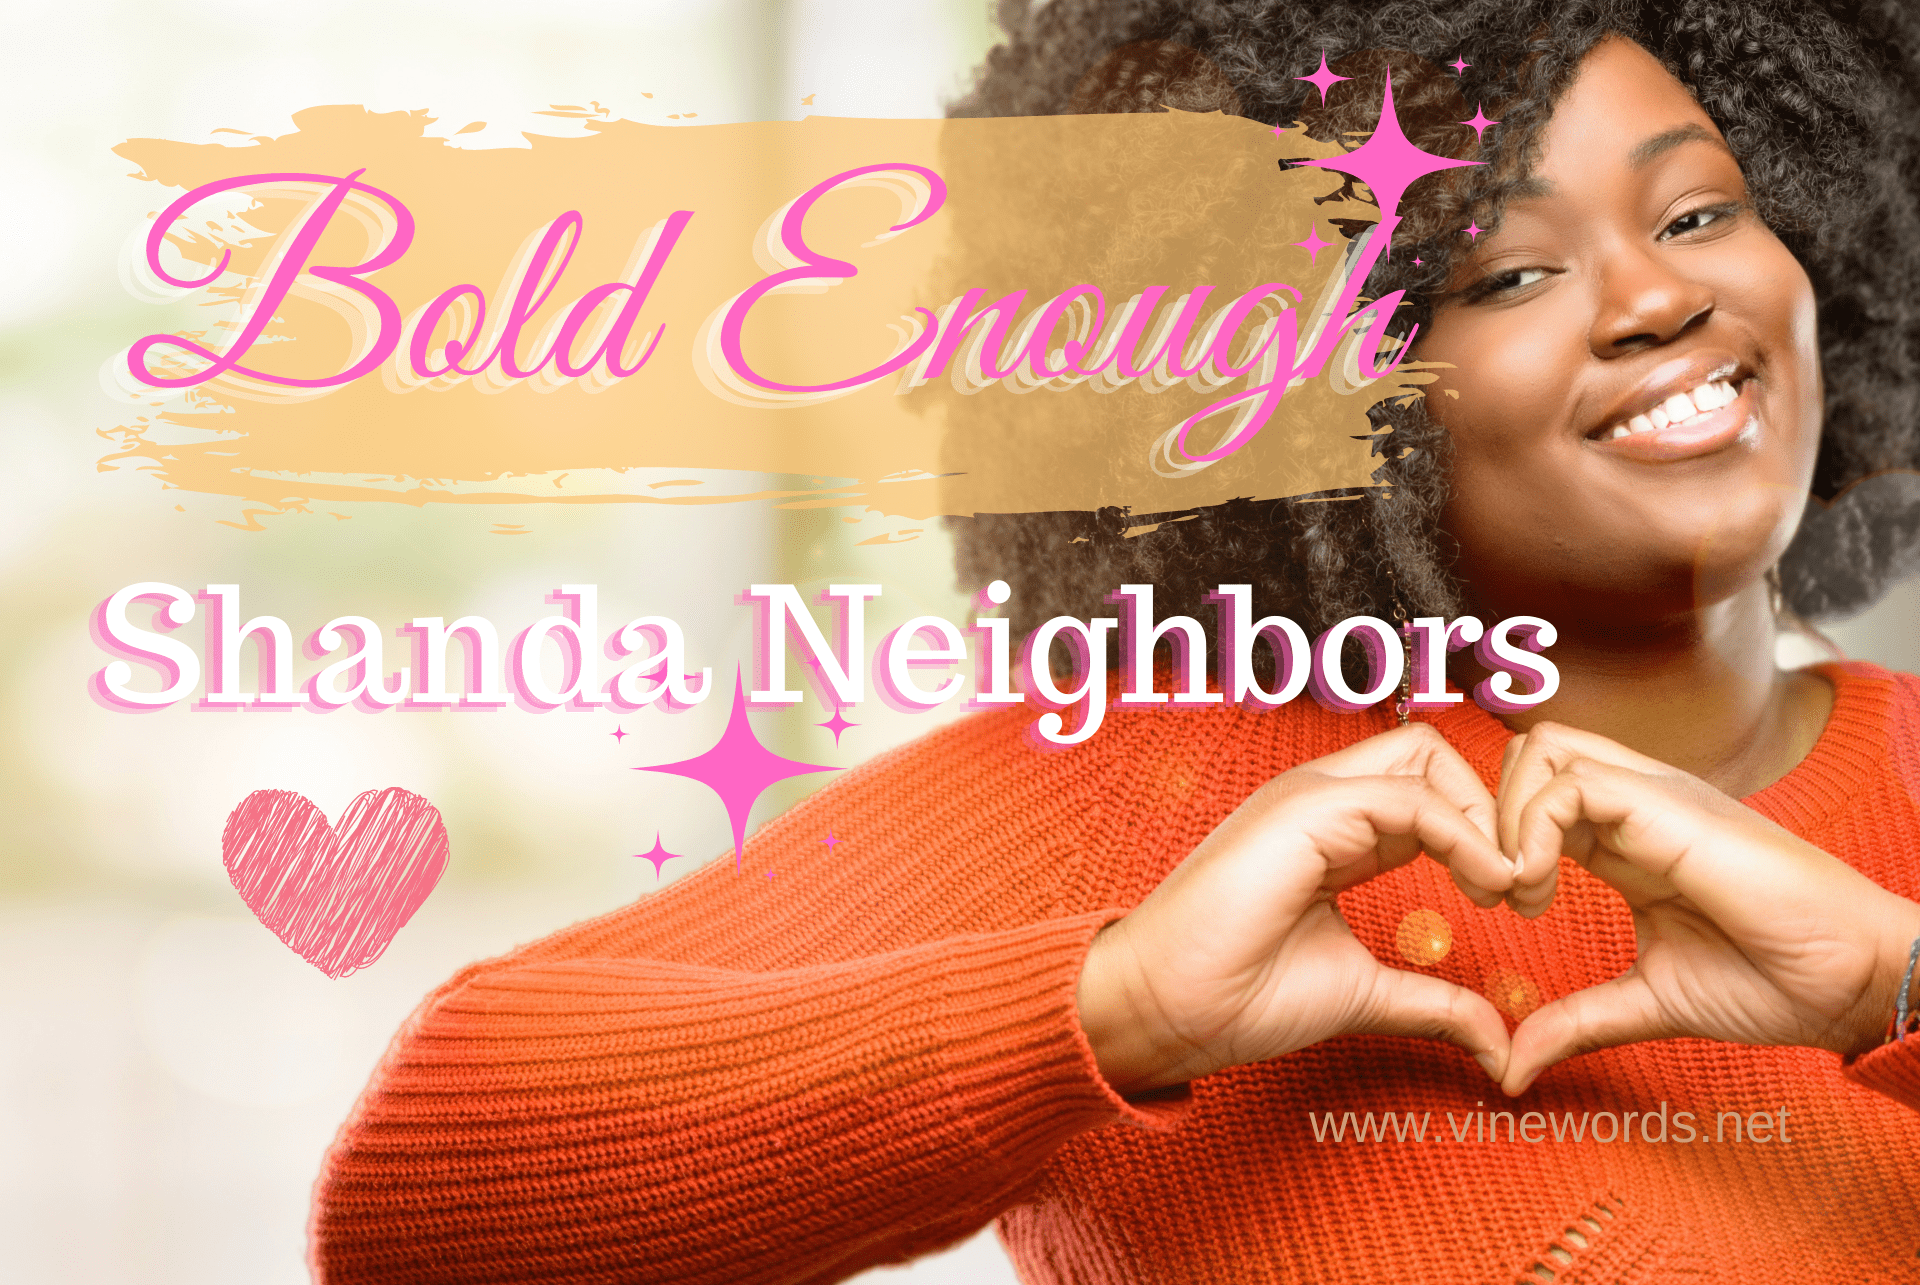 Shanda Neighbors: Bold Enough